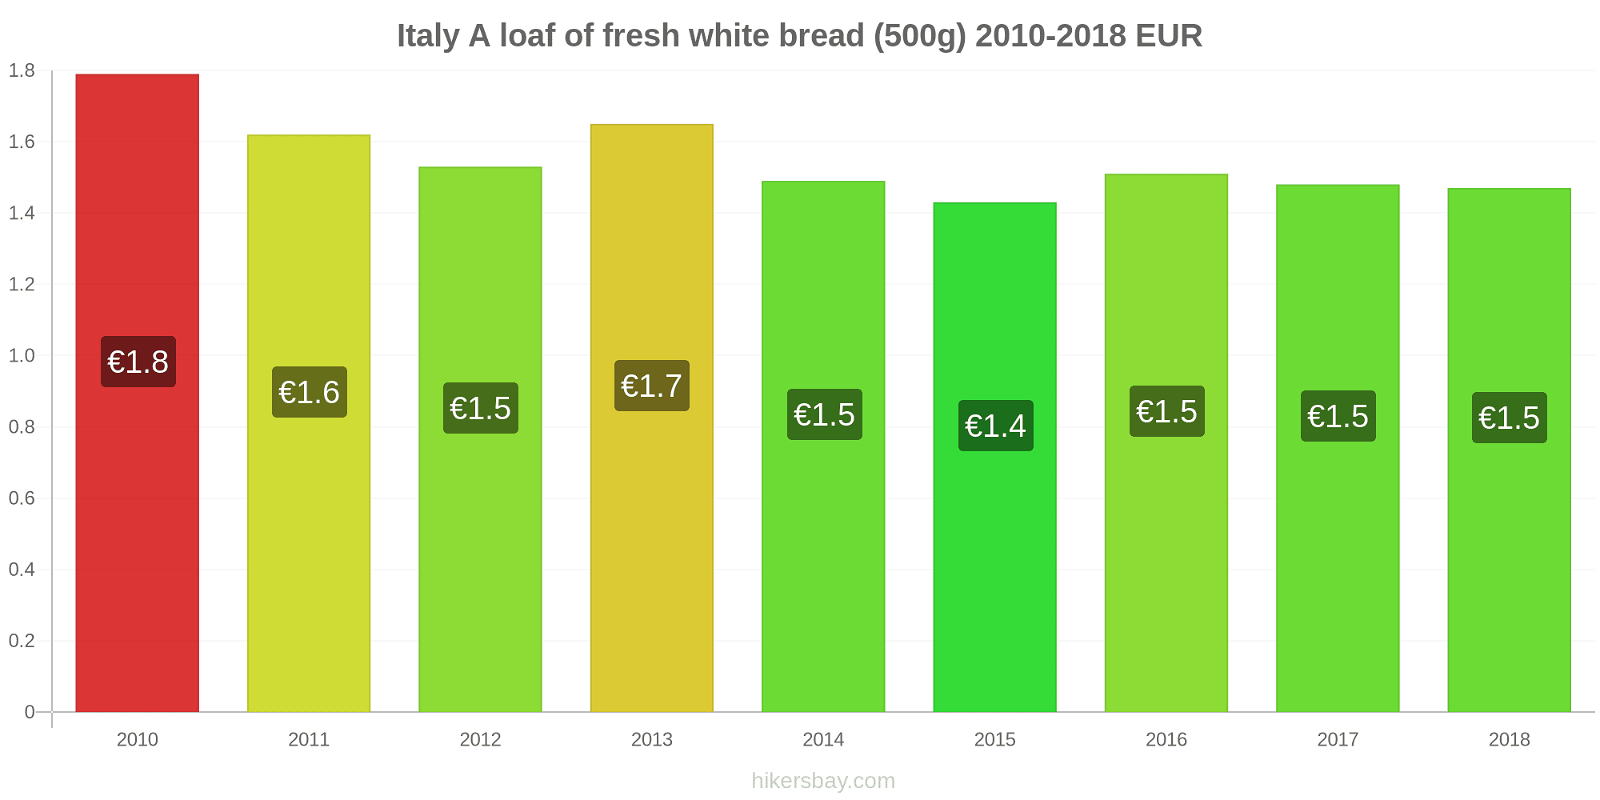 Italy price changes A loaf of fresh white bread (500g) hikersbay.com